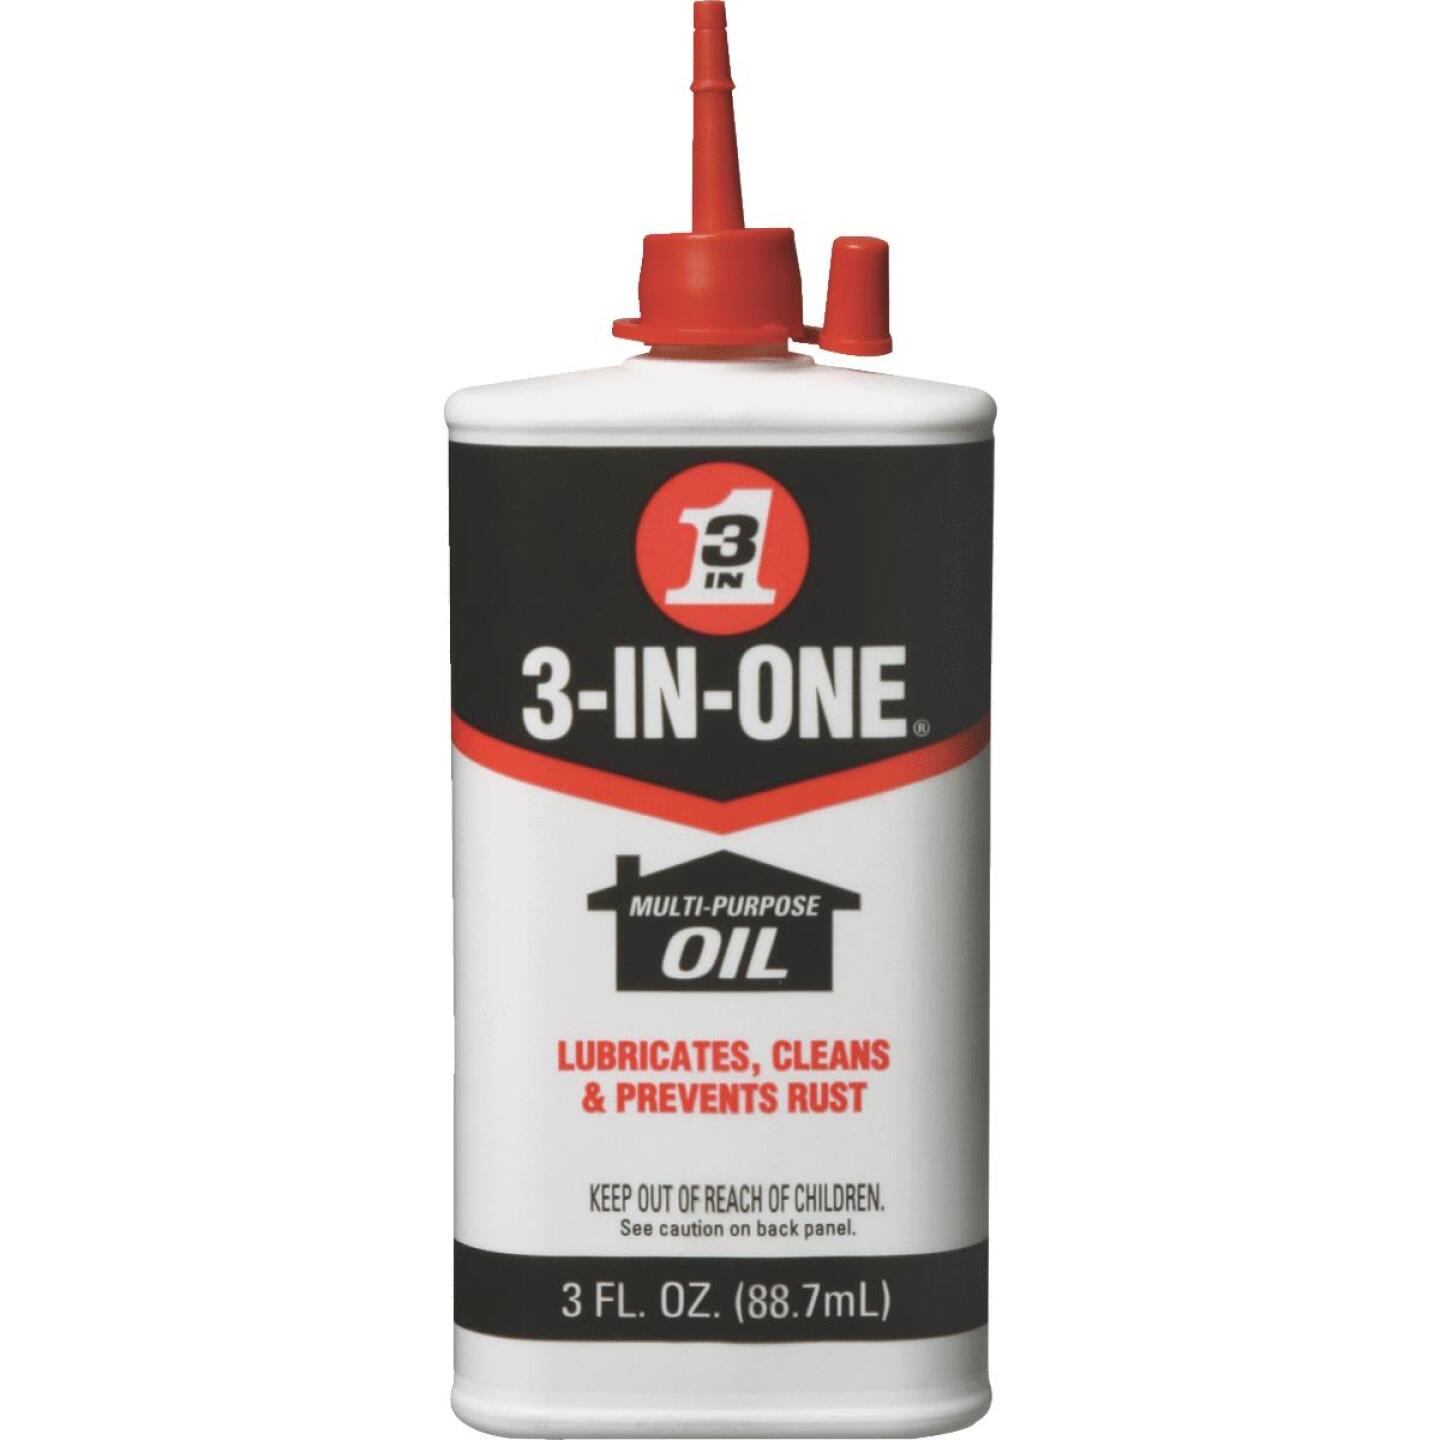 3-IN-ONE 3 Oz. Drip Bottle Household Oil Image 1